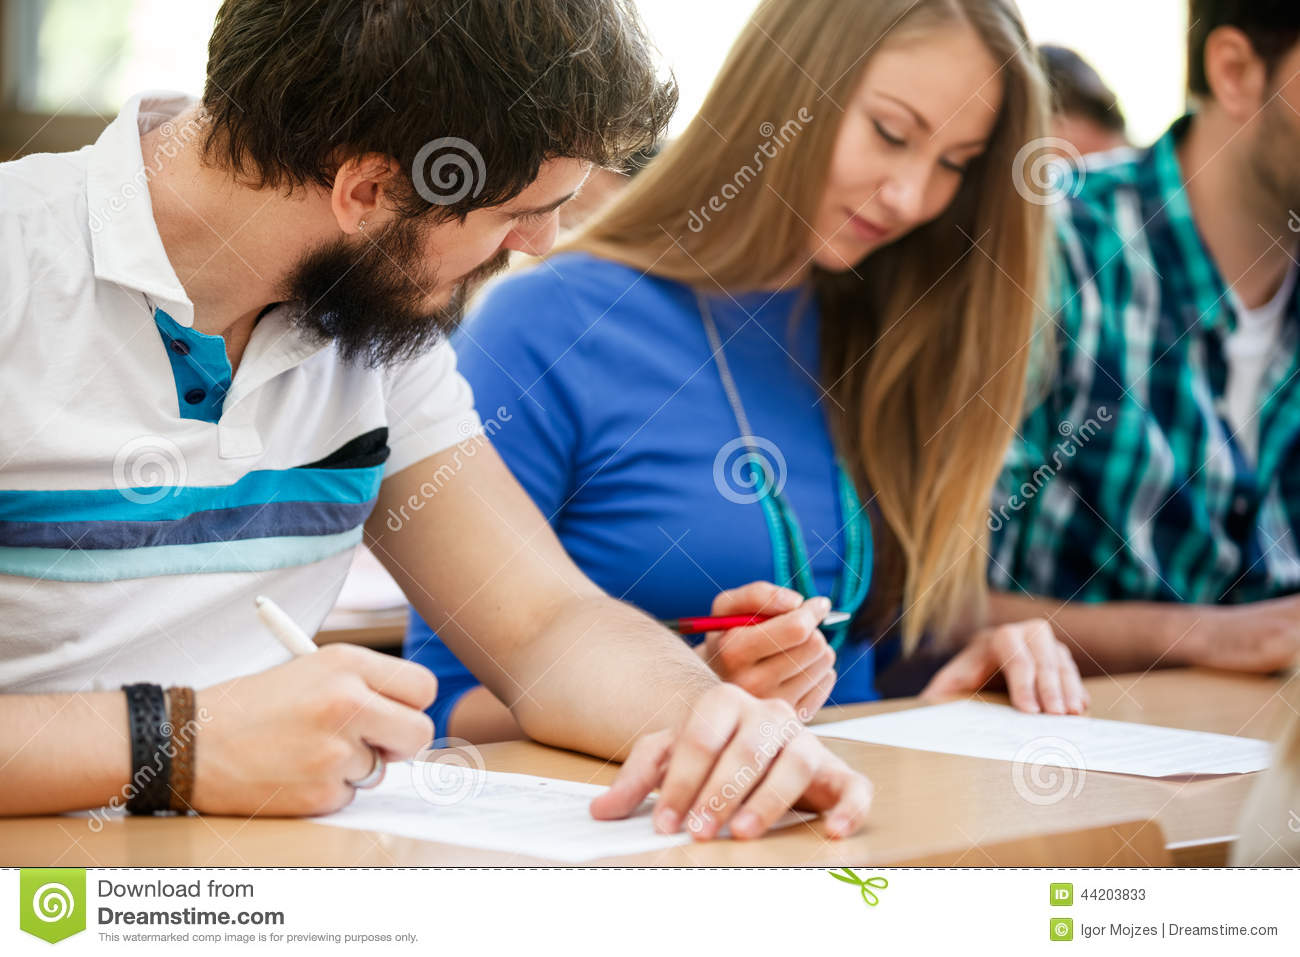 consequences of a college student cheating on exams Student copying from another student) exam misconduct getting an unfair advantage warn other students of the consequences of cheating cheating at ucsd is serious business consequences of academic dishonesty, most students also.